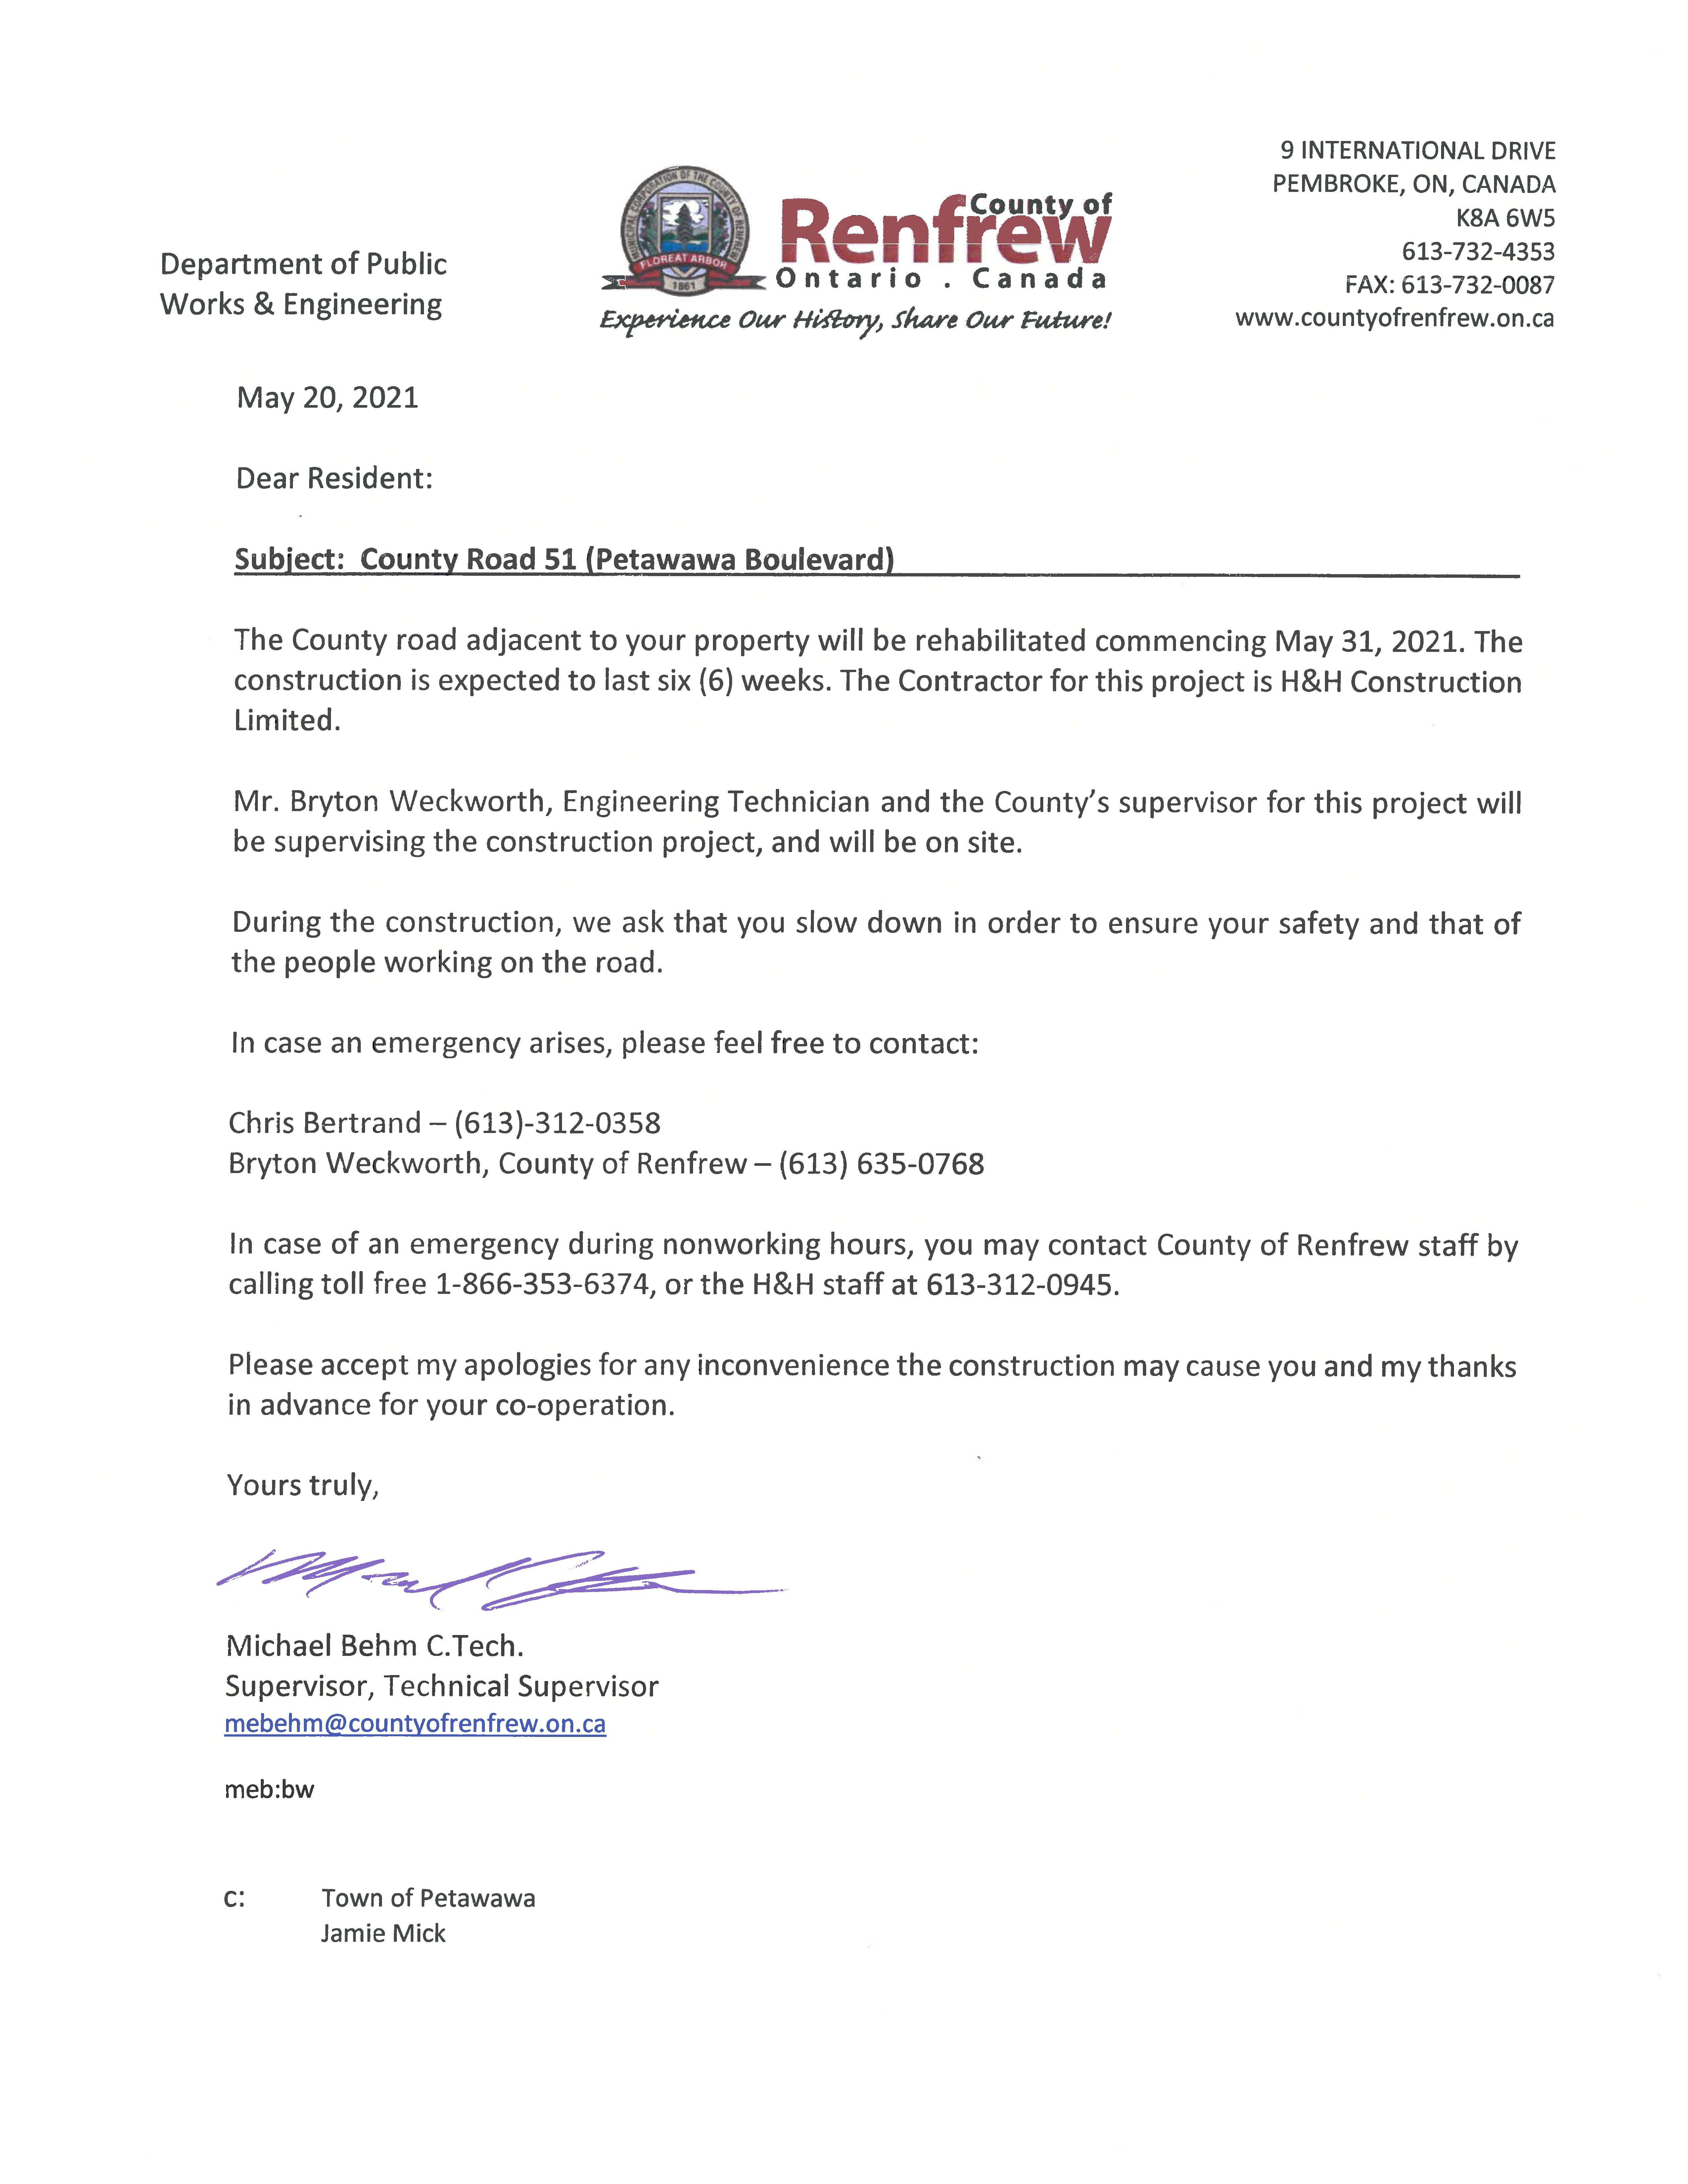 letter from the County of Renfrew detailing County Rd. 51 rehabilitation works.